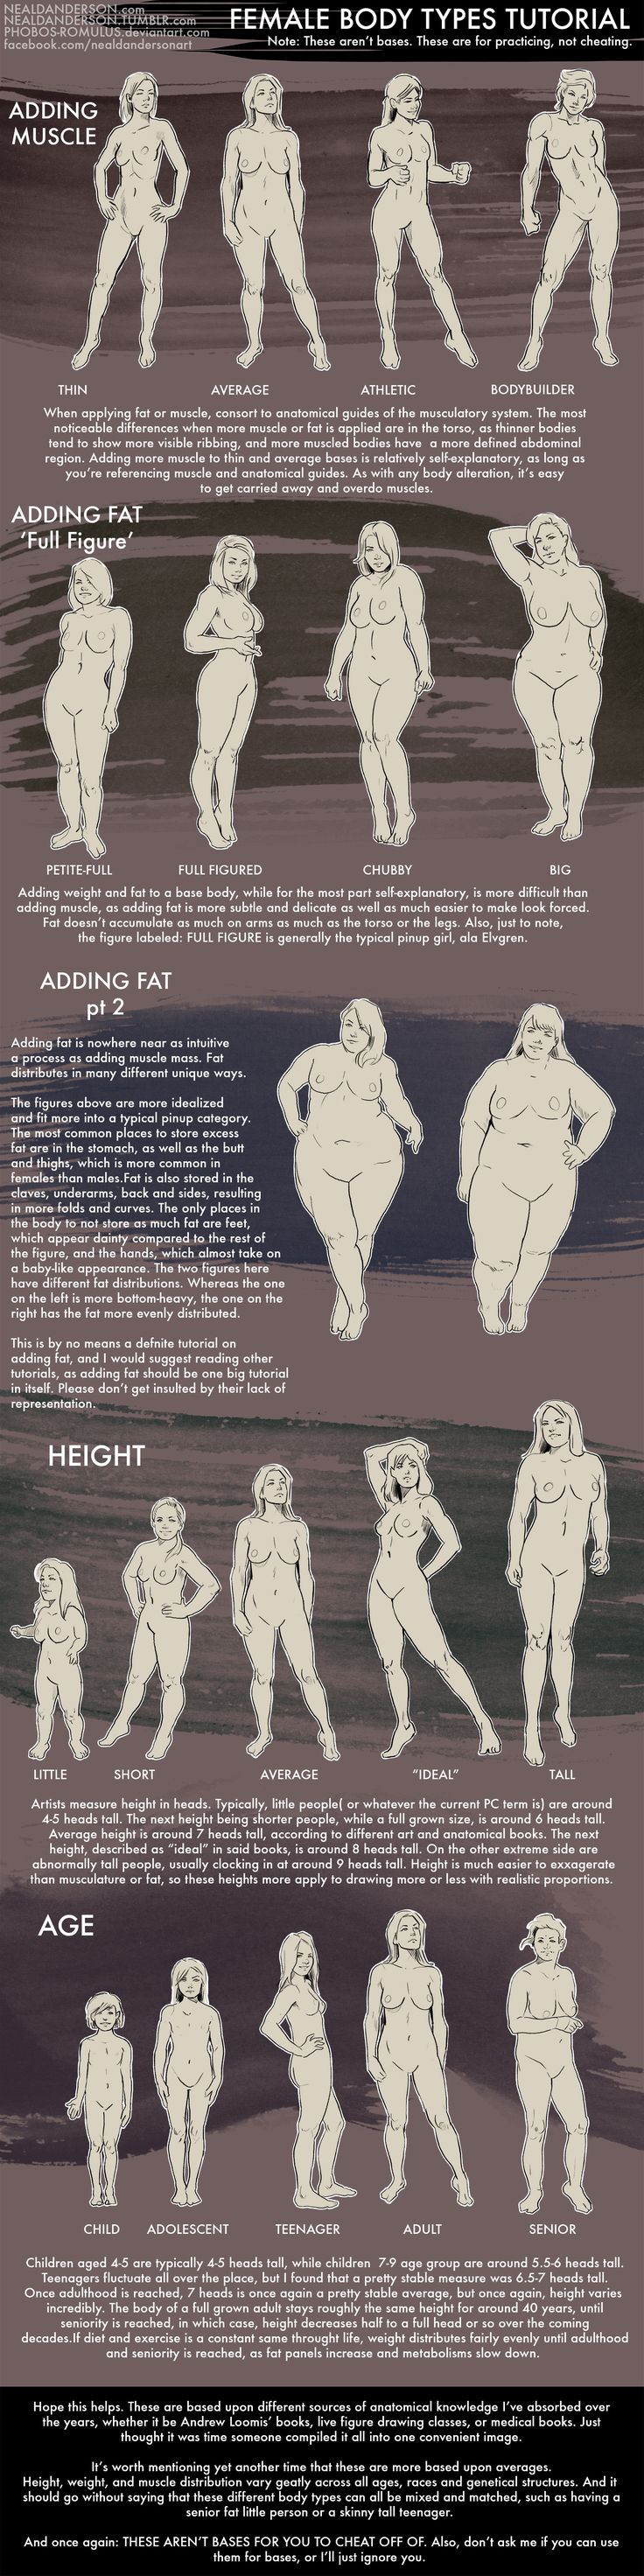 Female Body Types Tutorial by Phobos-Romulus.deviantart.com on @deviantART